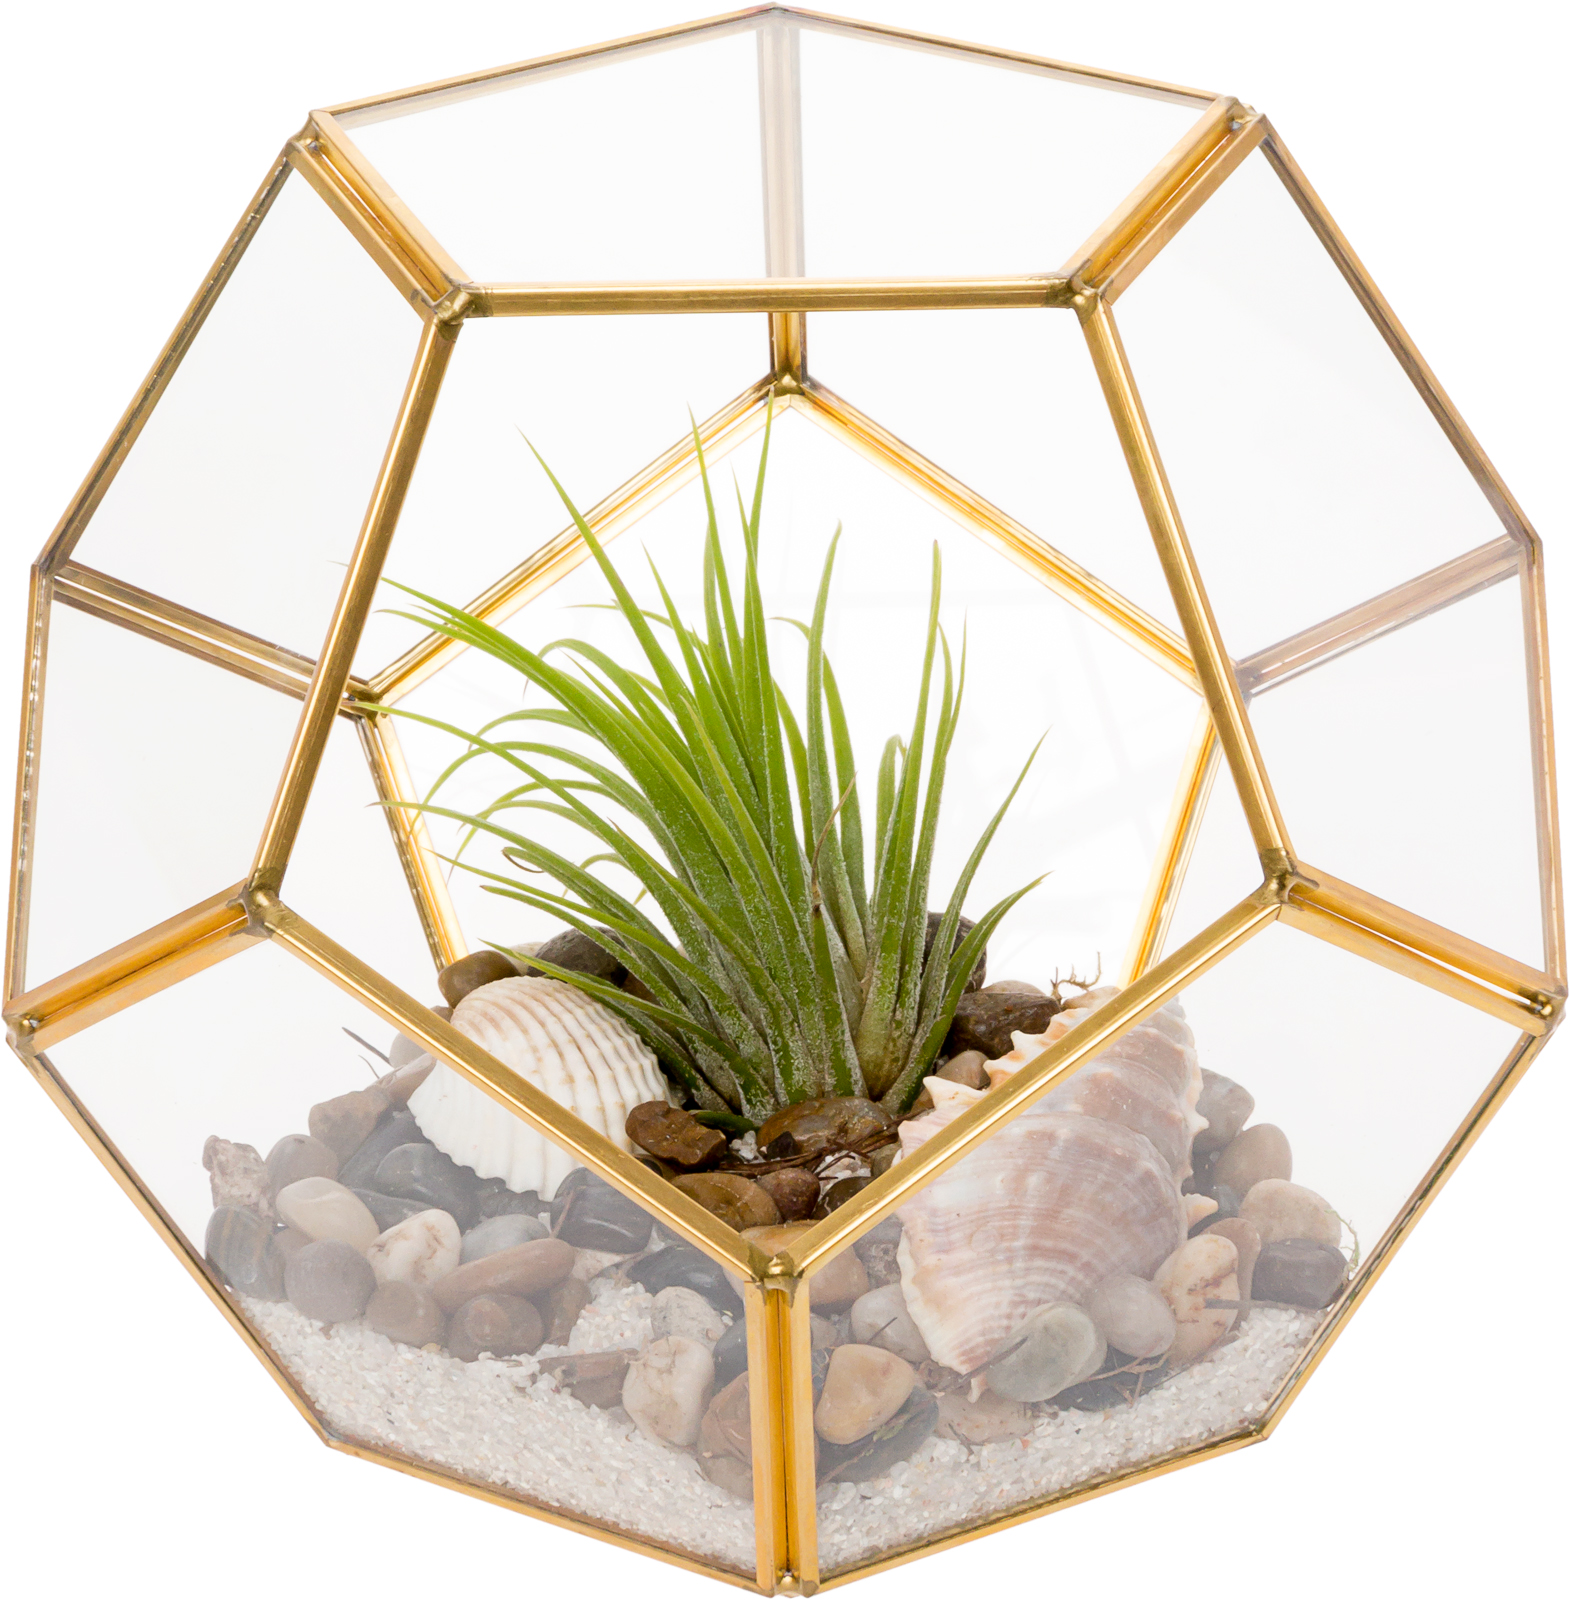 Mindful Design Geometric Dodecahedron Desktop Garden Planter Glass Terrarium